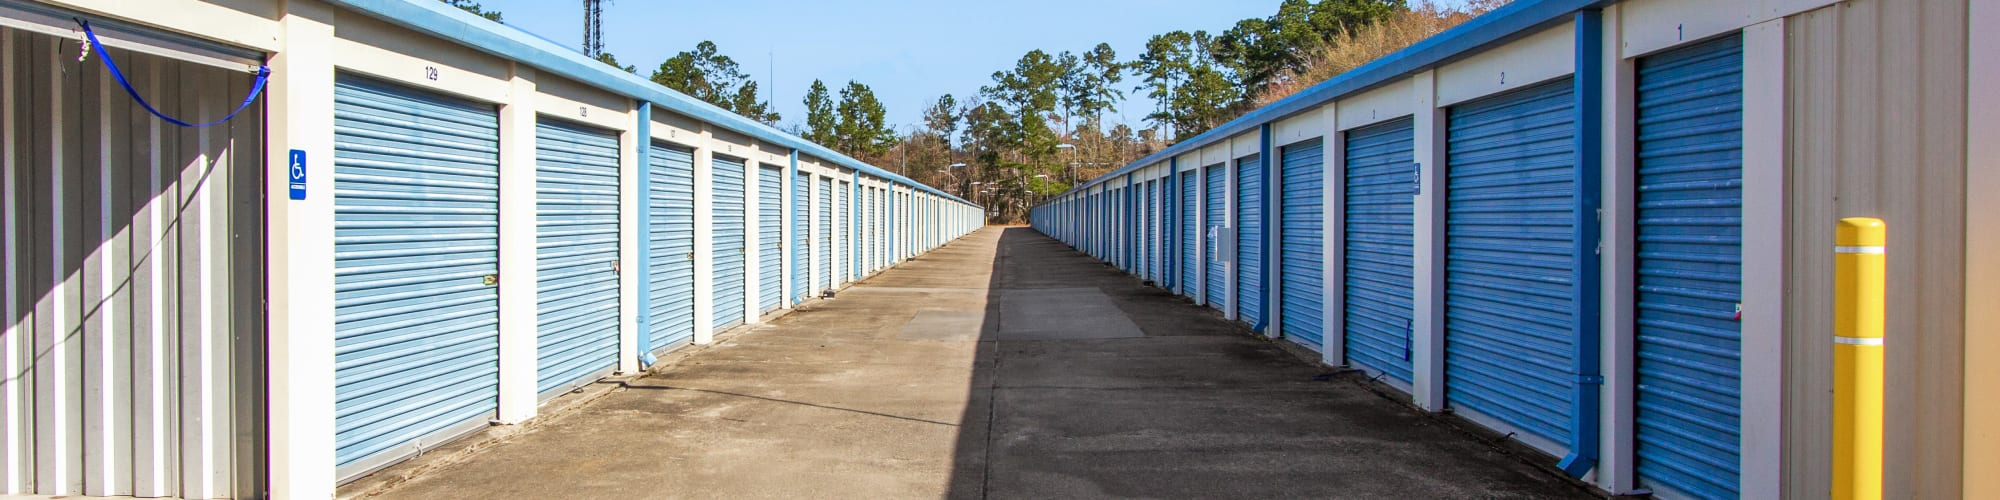 Climate Control Storage Units at Global Self Storage in Summerville, South Carolina